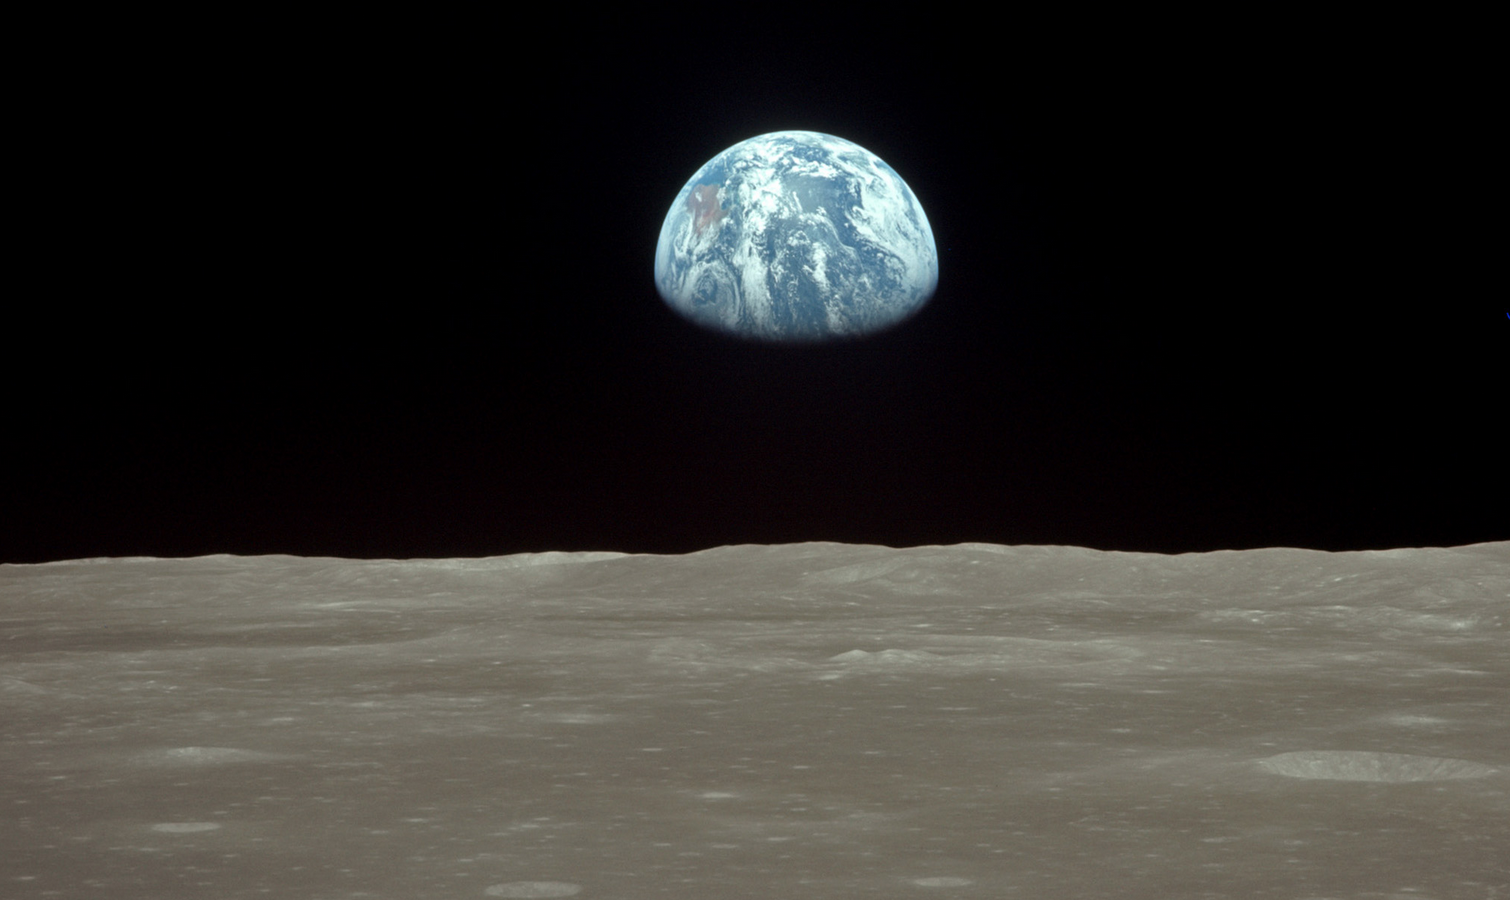 Pillar to Post: ICONIC IMAGES / EARTH RISE FROM THE MOON